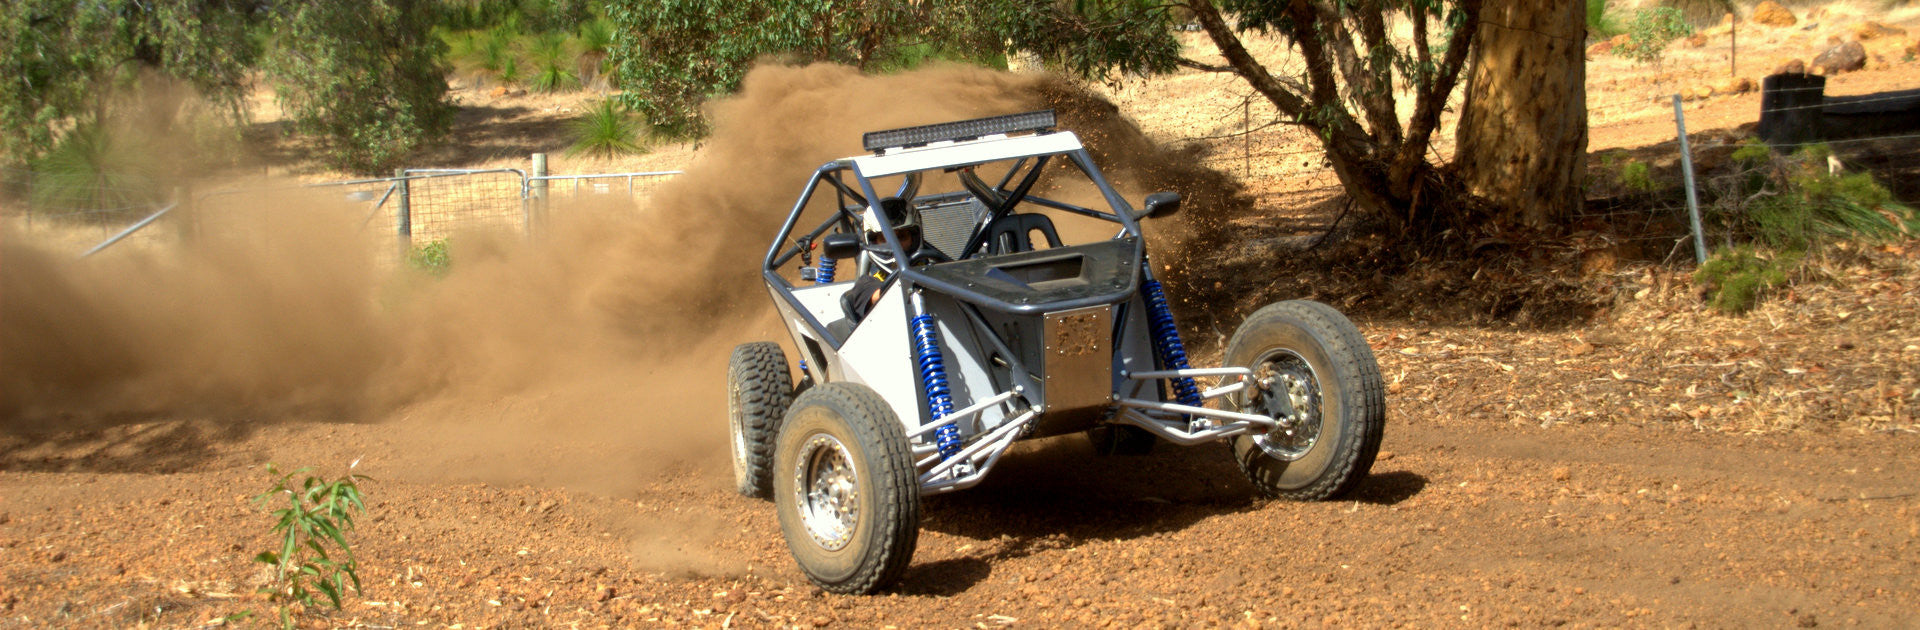 The Edge Products | The Edge Products - Dune Buggy Plans and Parts ...